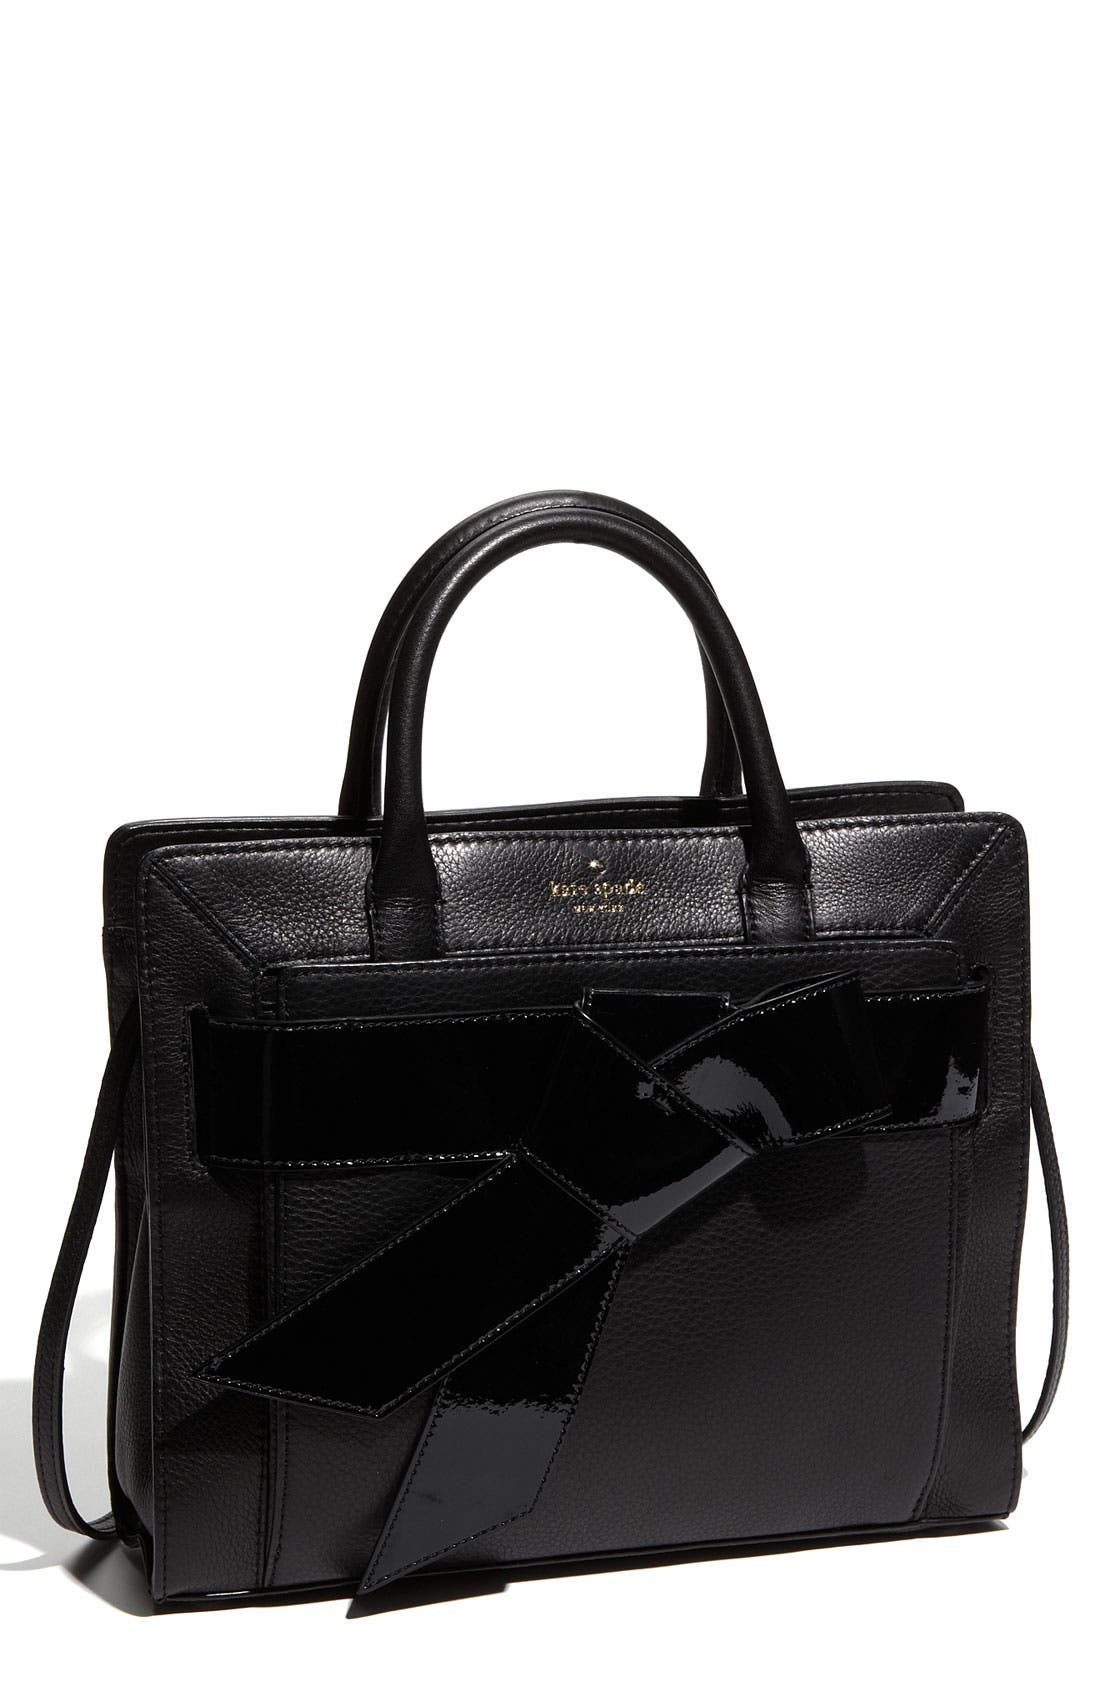 Main Image - kate spade new york 'bow valley - rosa' satchel